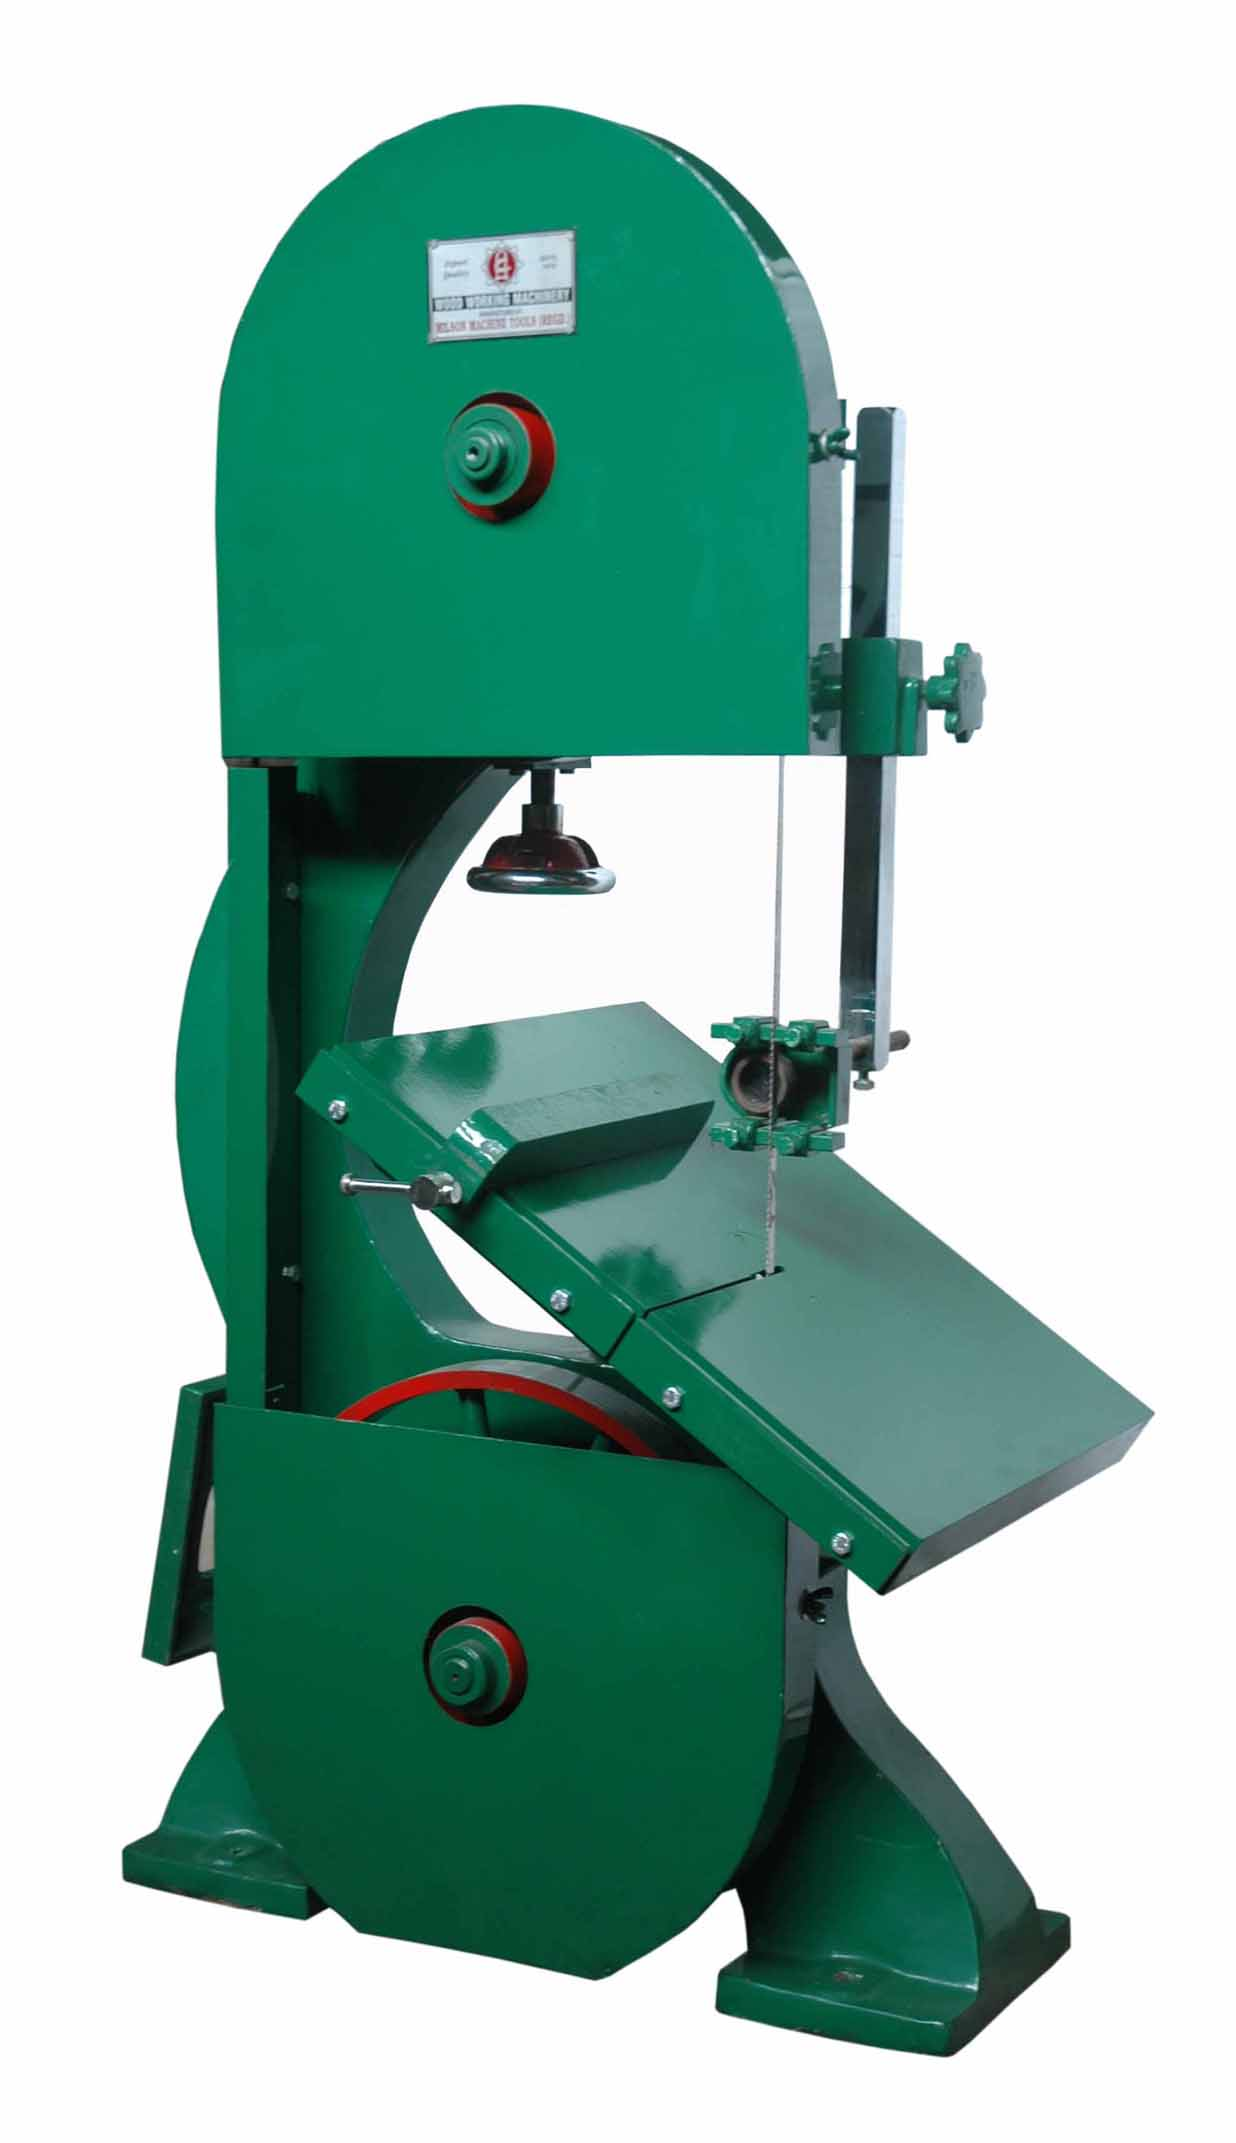 woodworking machinery for sale in india | Woodworking Community